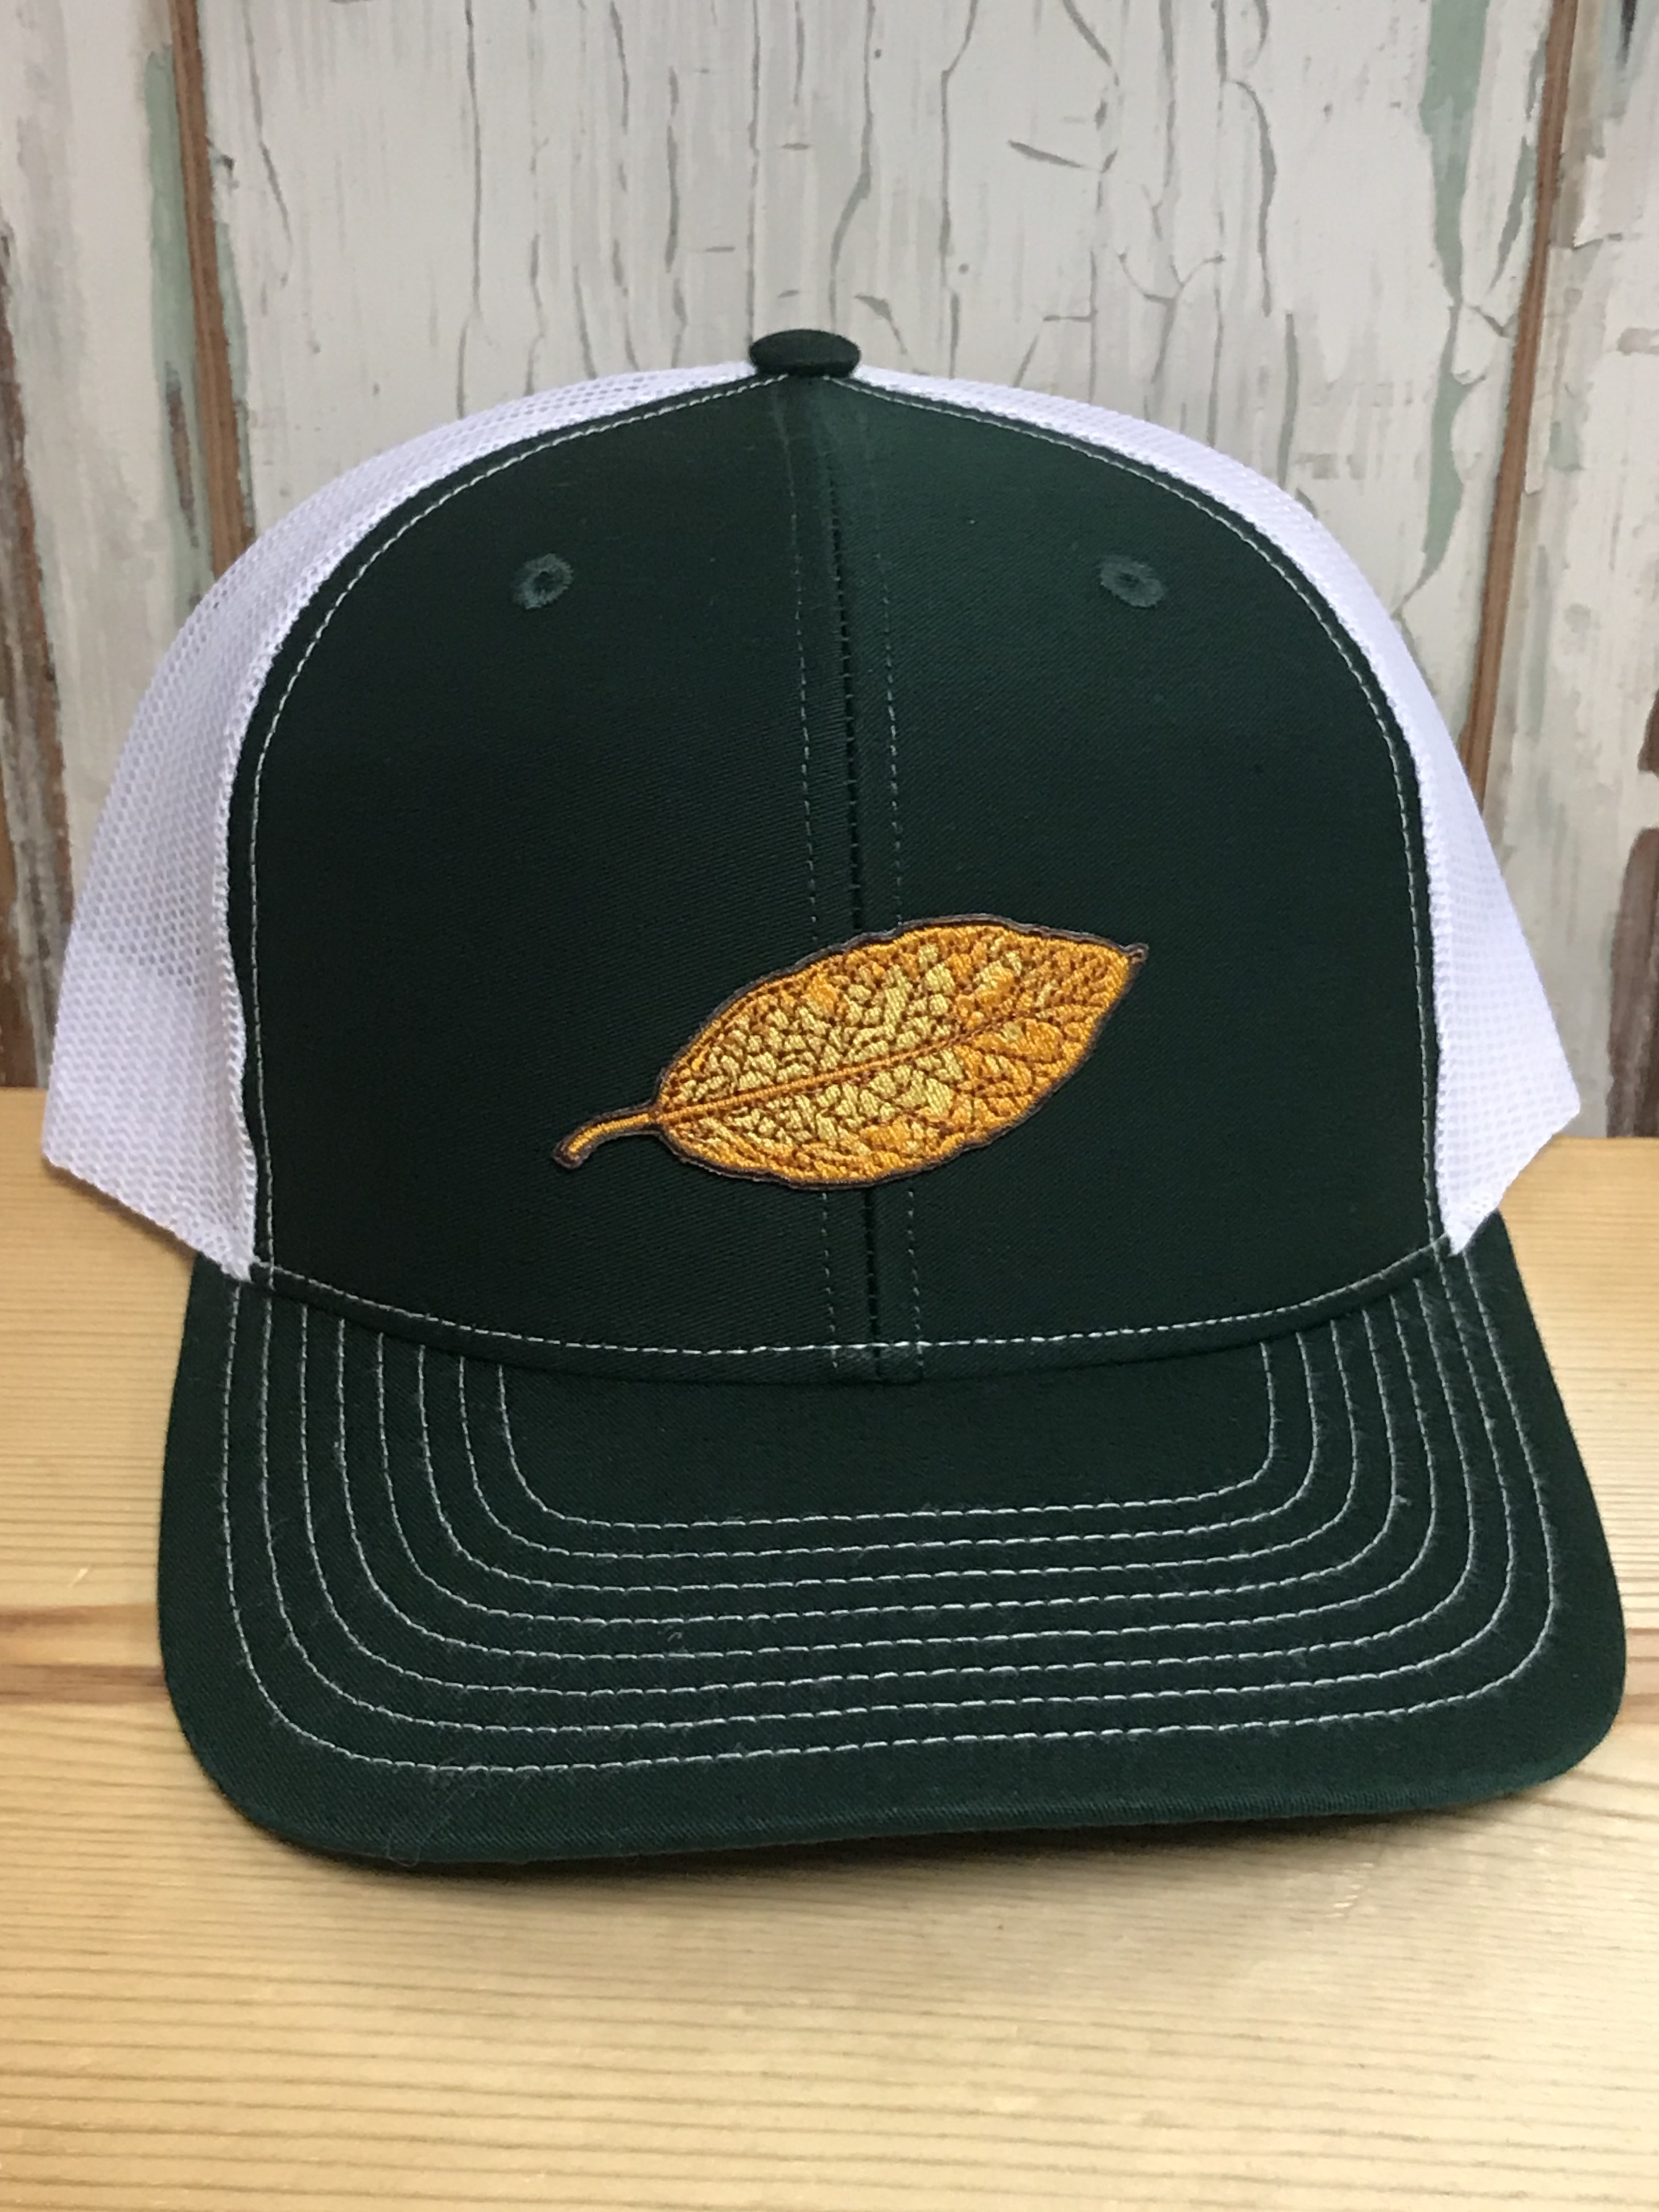 d396ea995c09f Tobacco Leaf Patch Snapback Trucker Hat Dark Green White Accessories